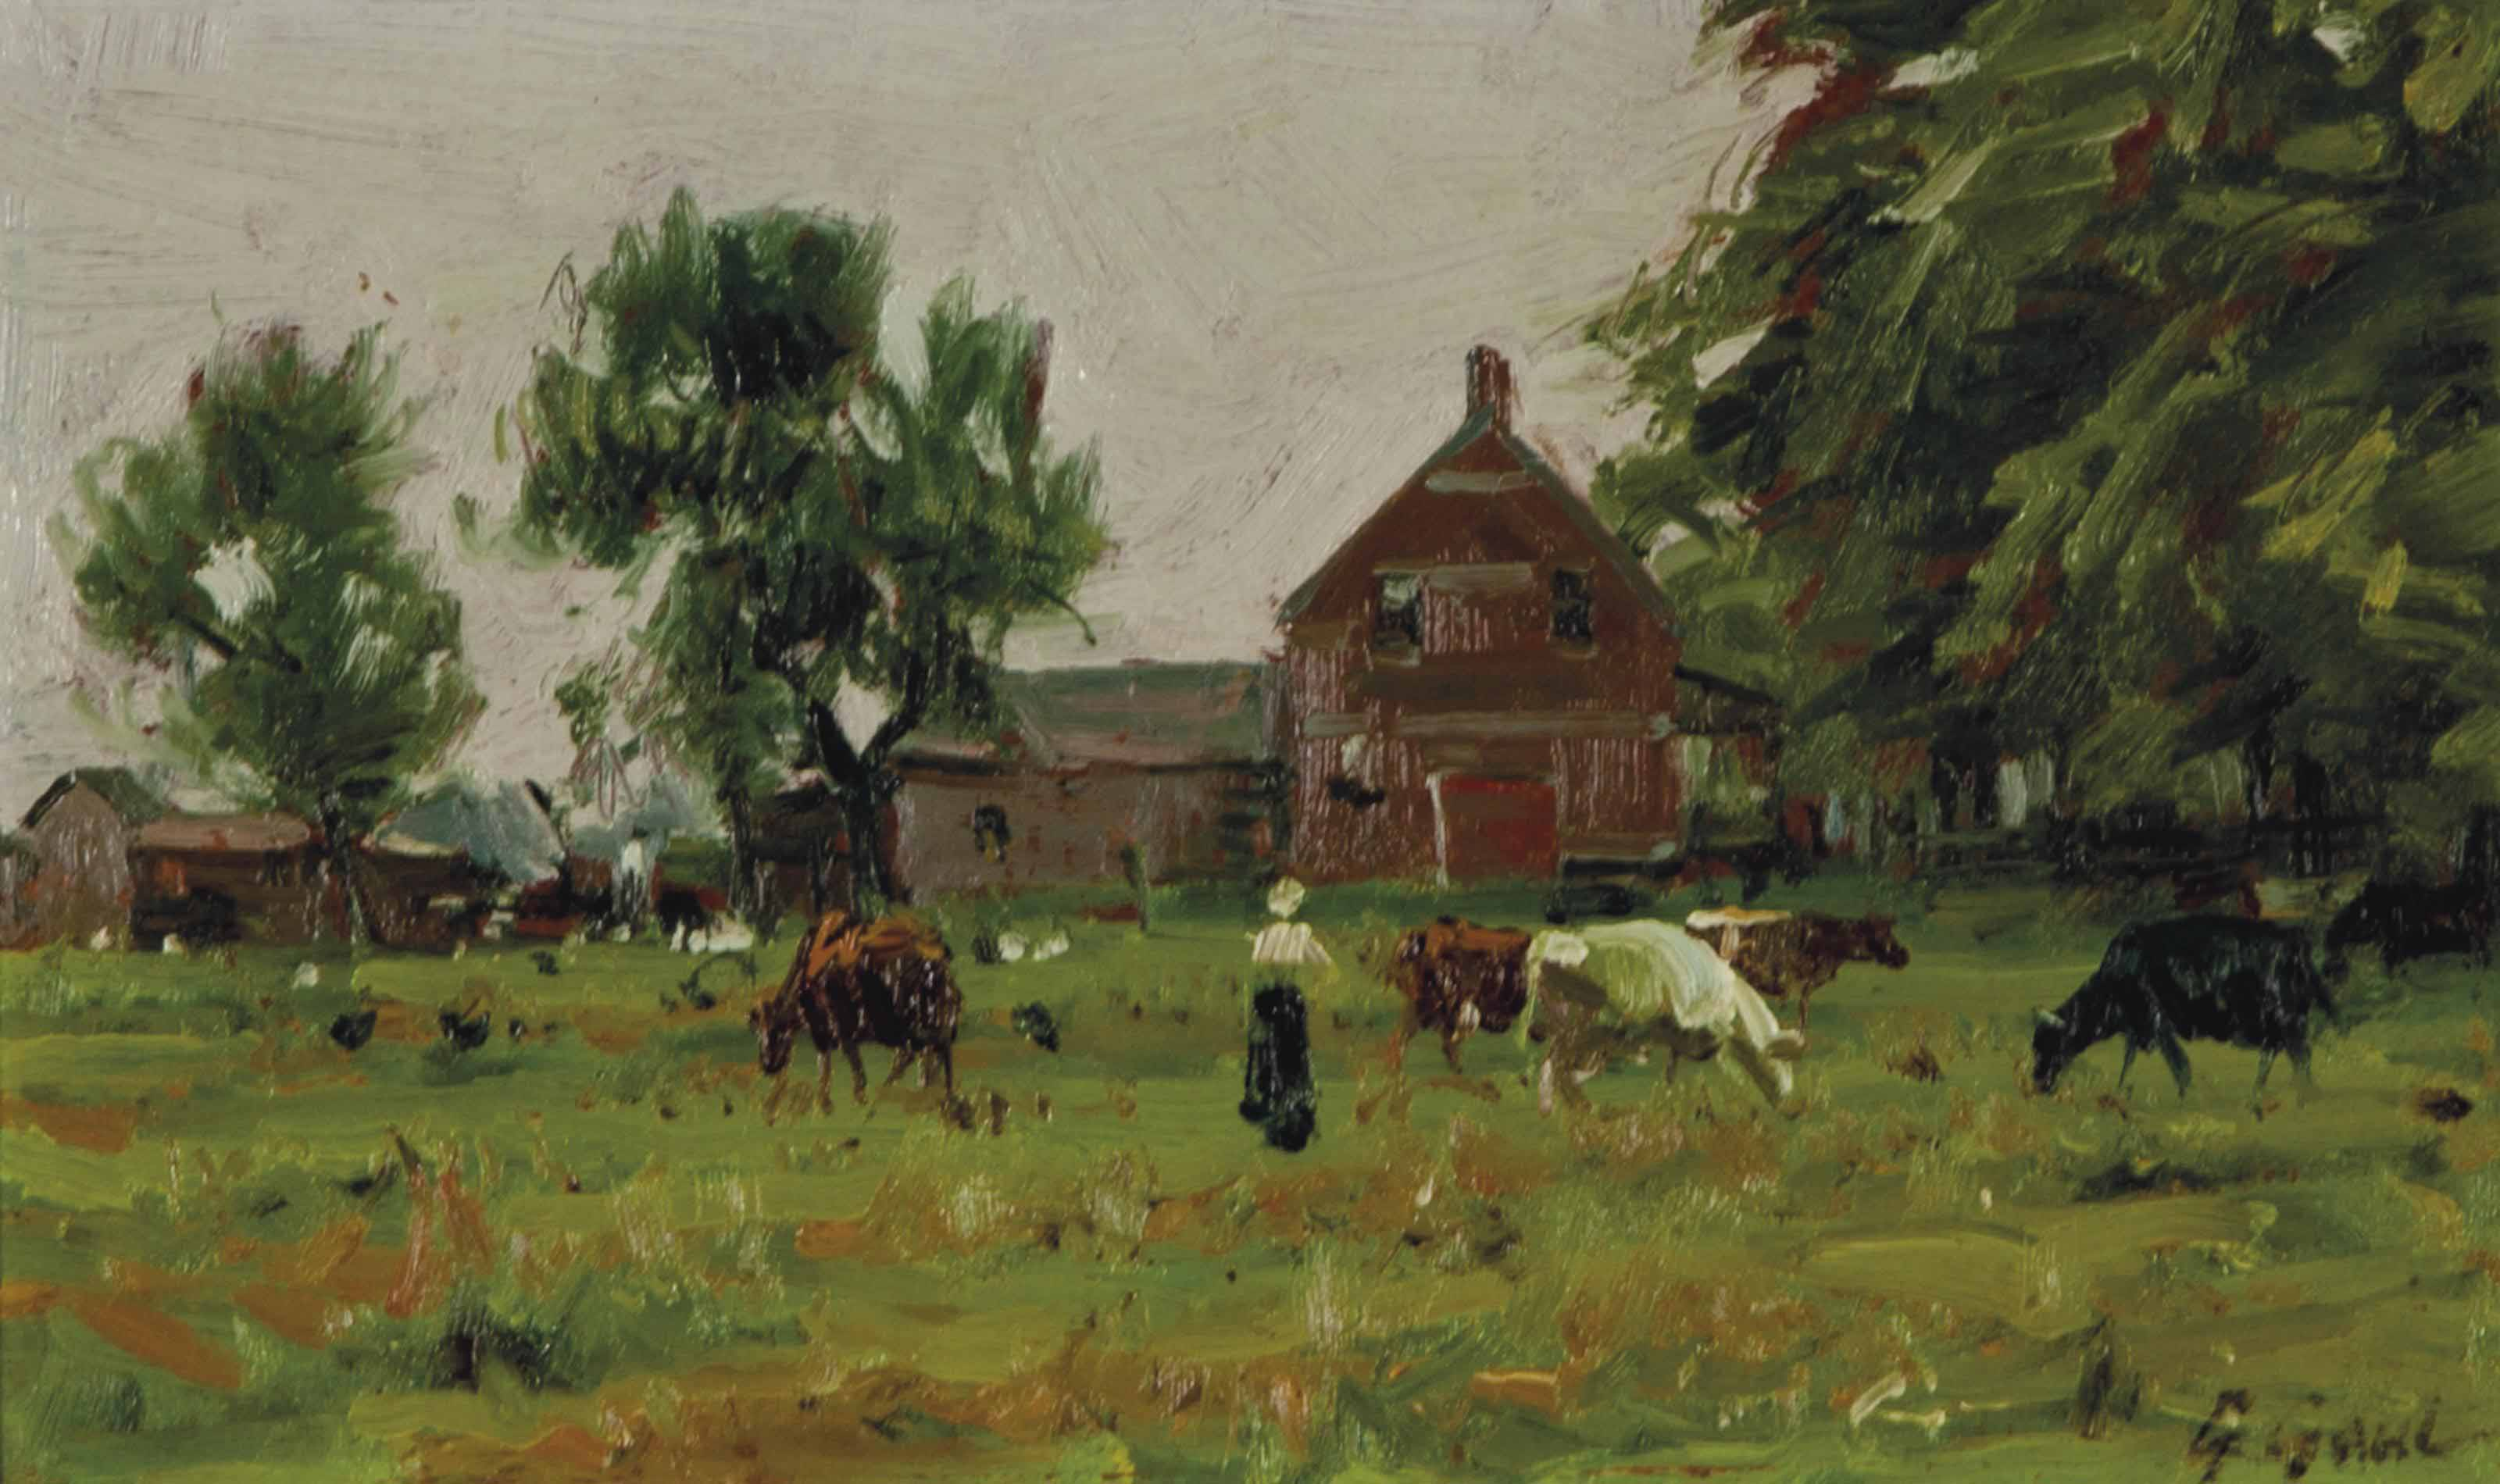 Farm in the Summer with cows